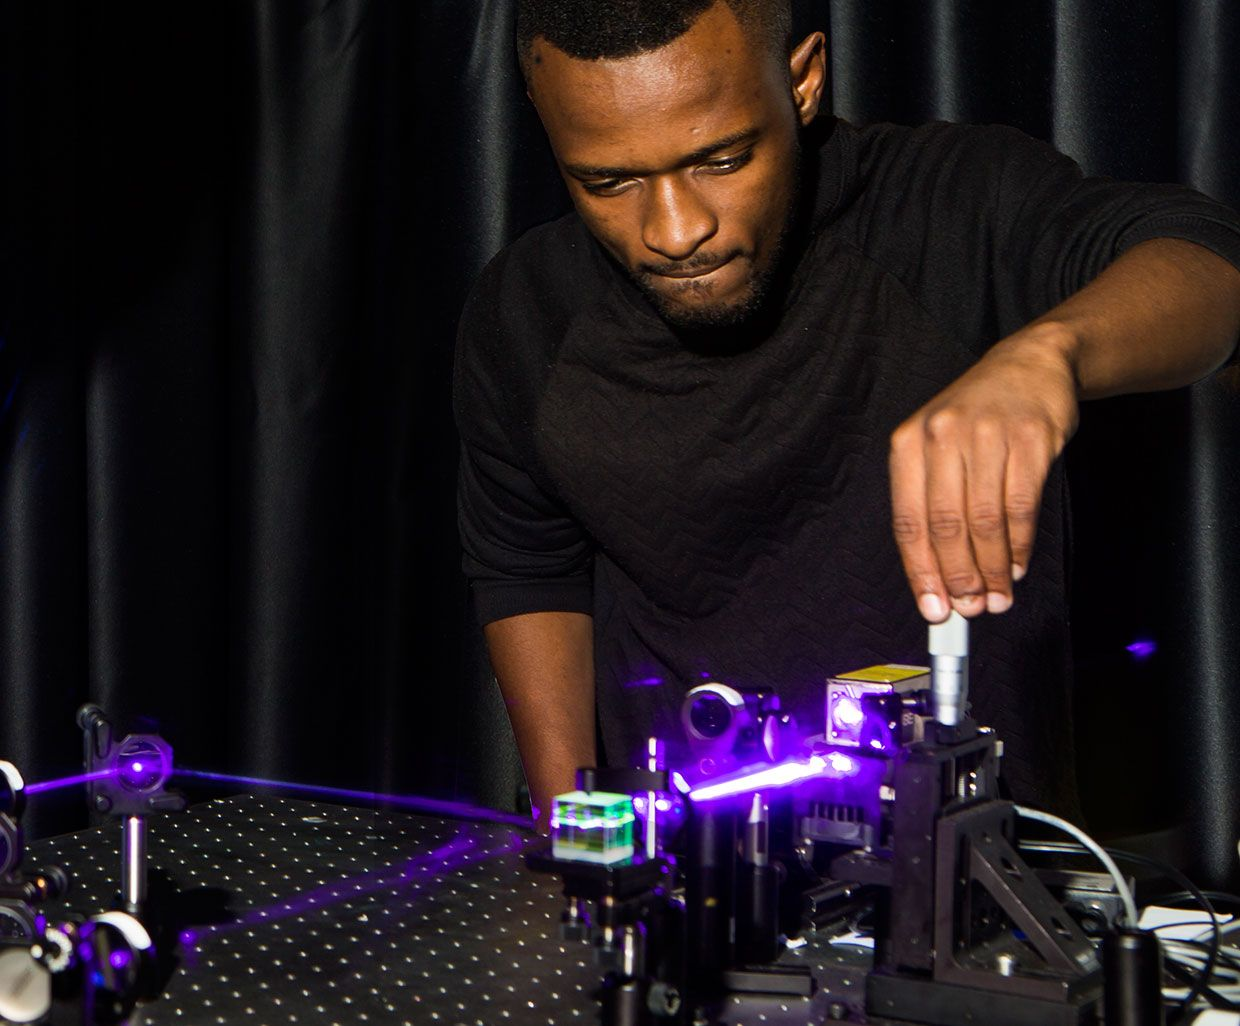 Wits Ph.D. student Isaac Nape -- one of the two lead Ph.D. students on the project -- aligns a quantum entanglement experiment.